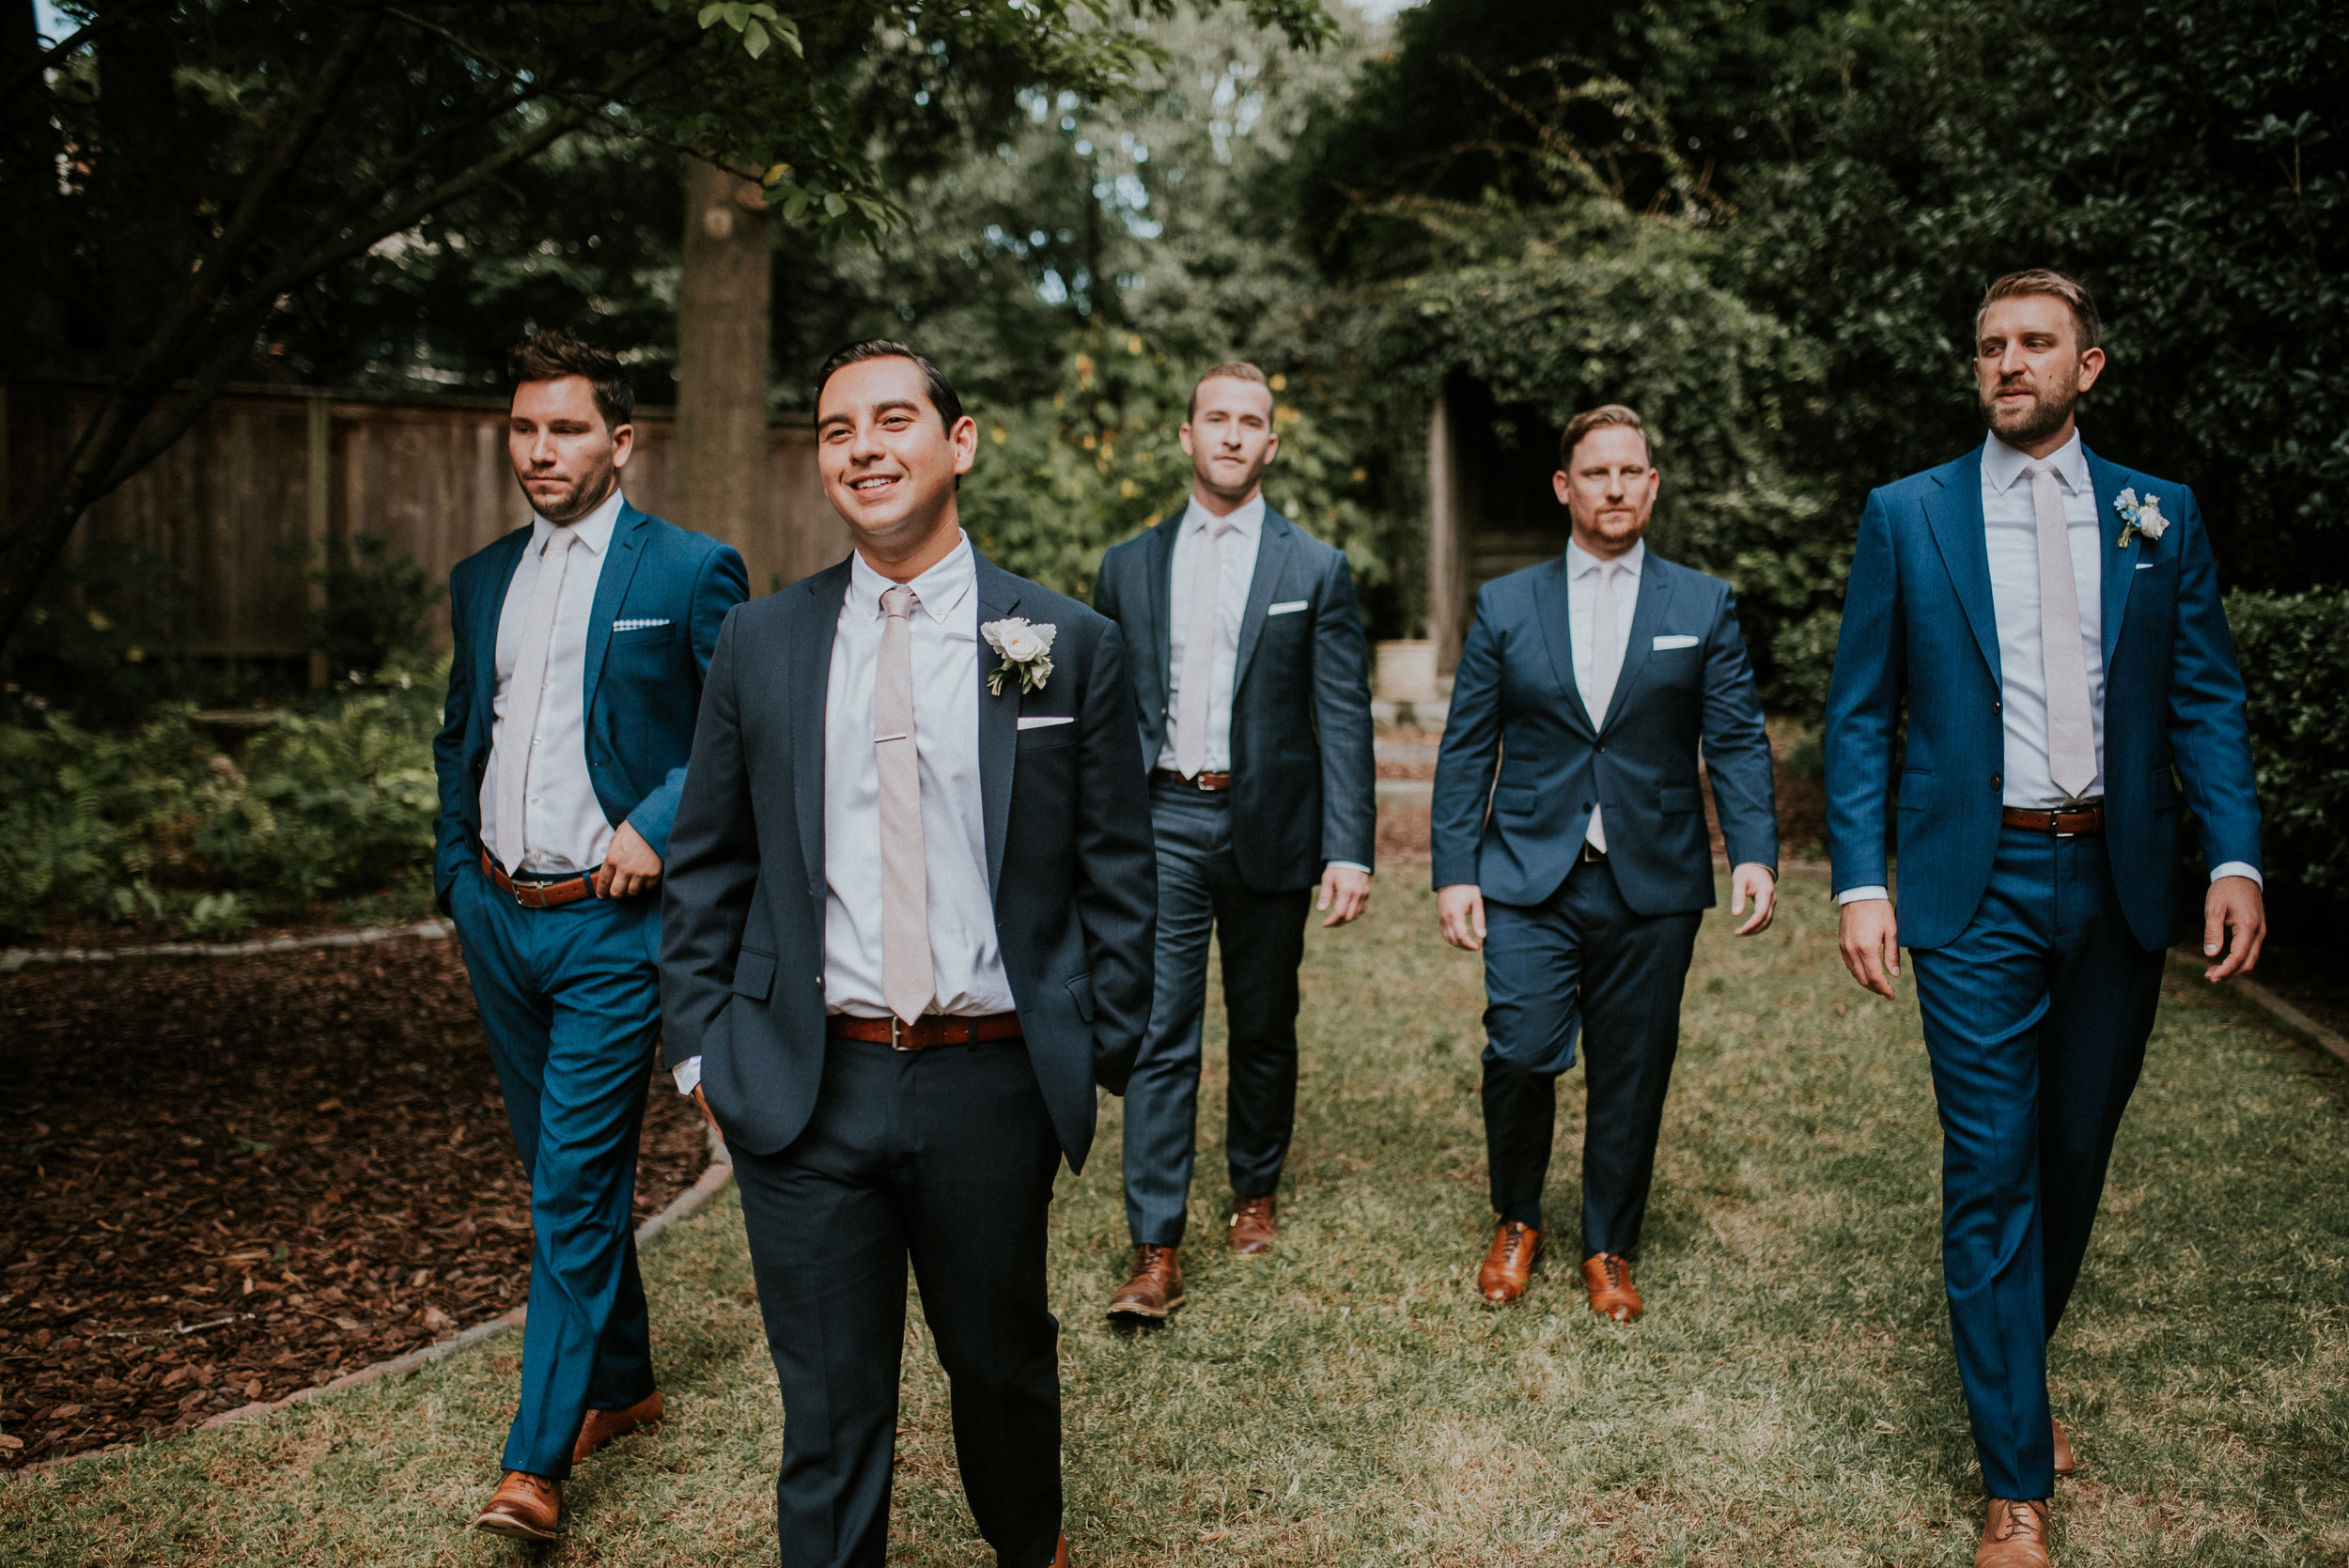 Groom and groomsmen in navy suits at The Trolley Barn